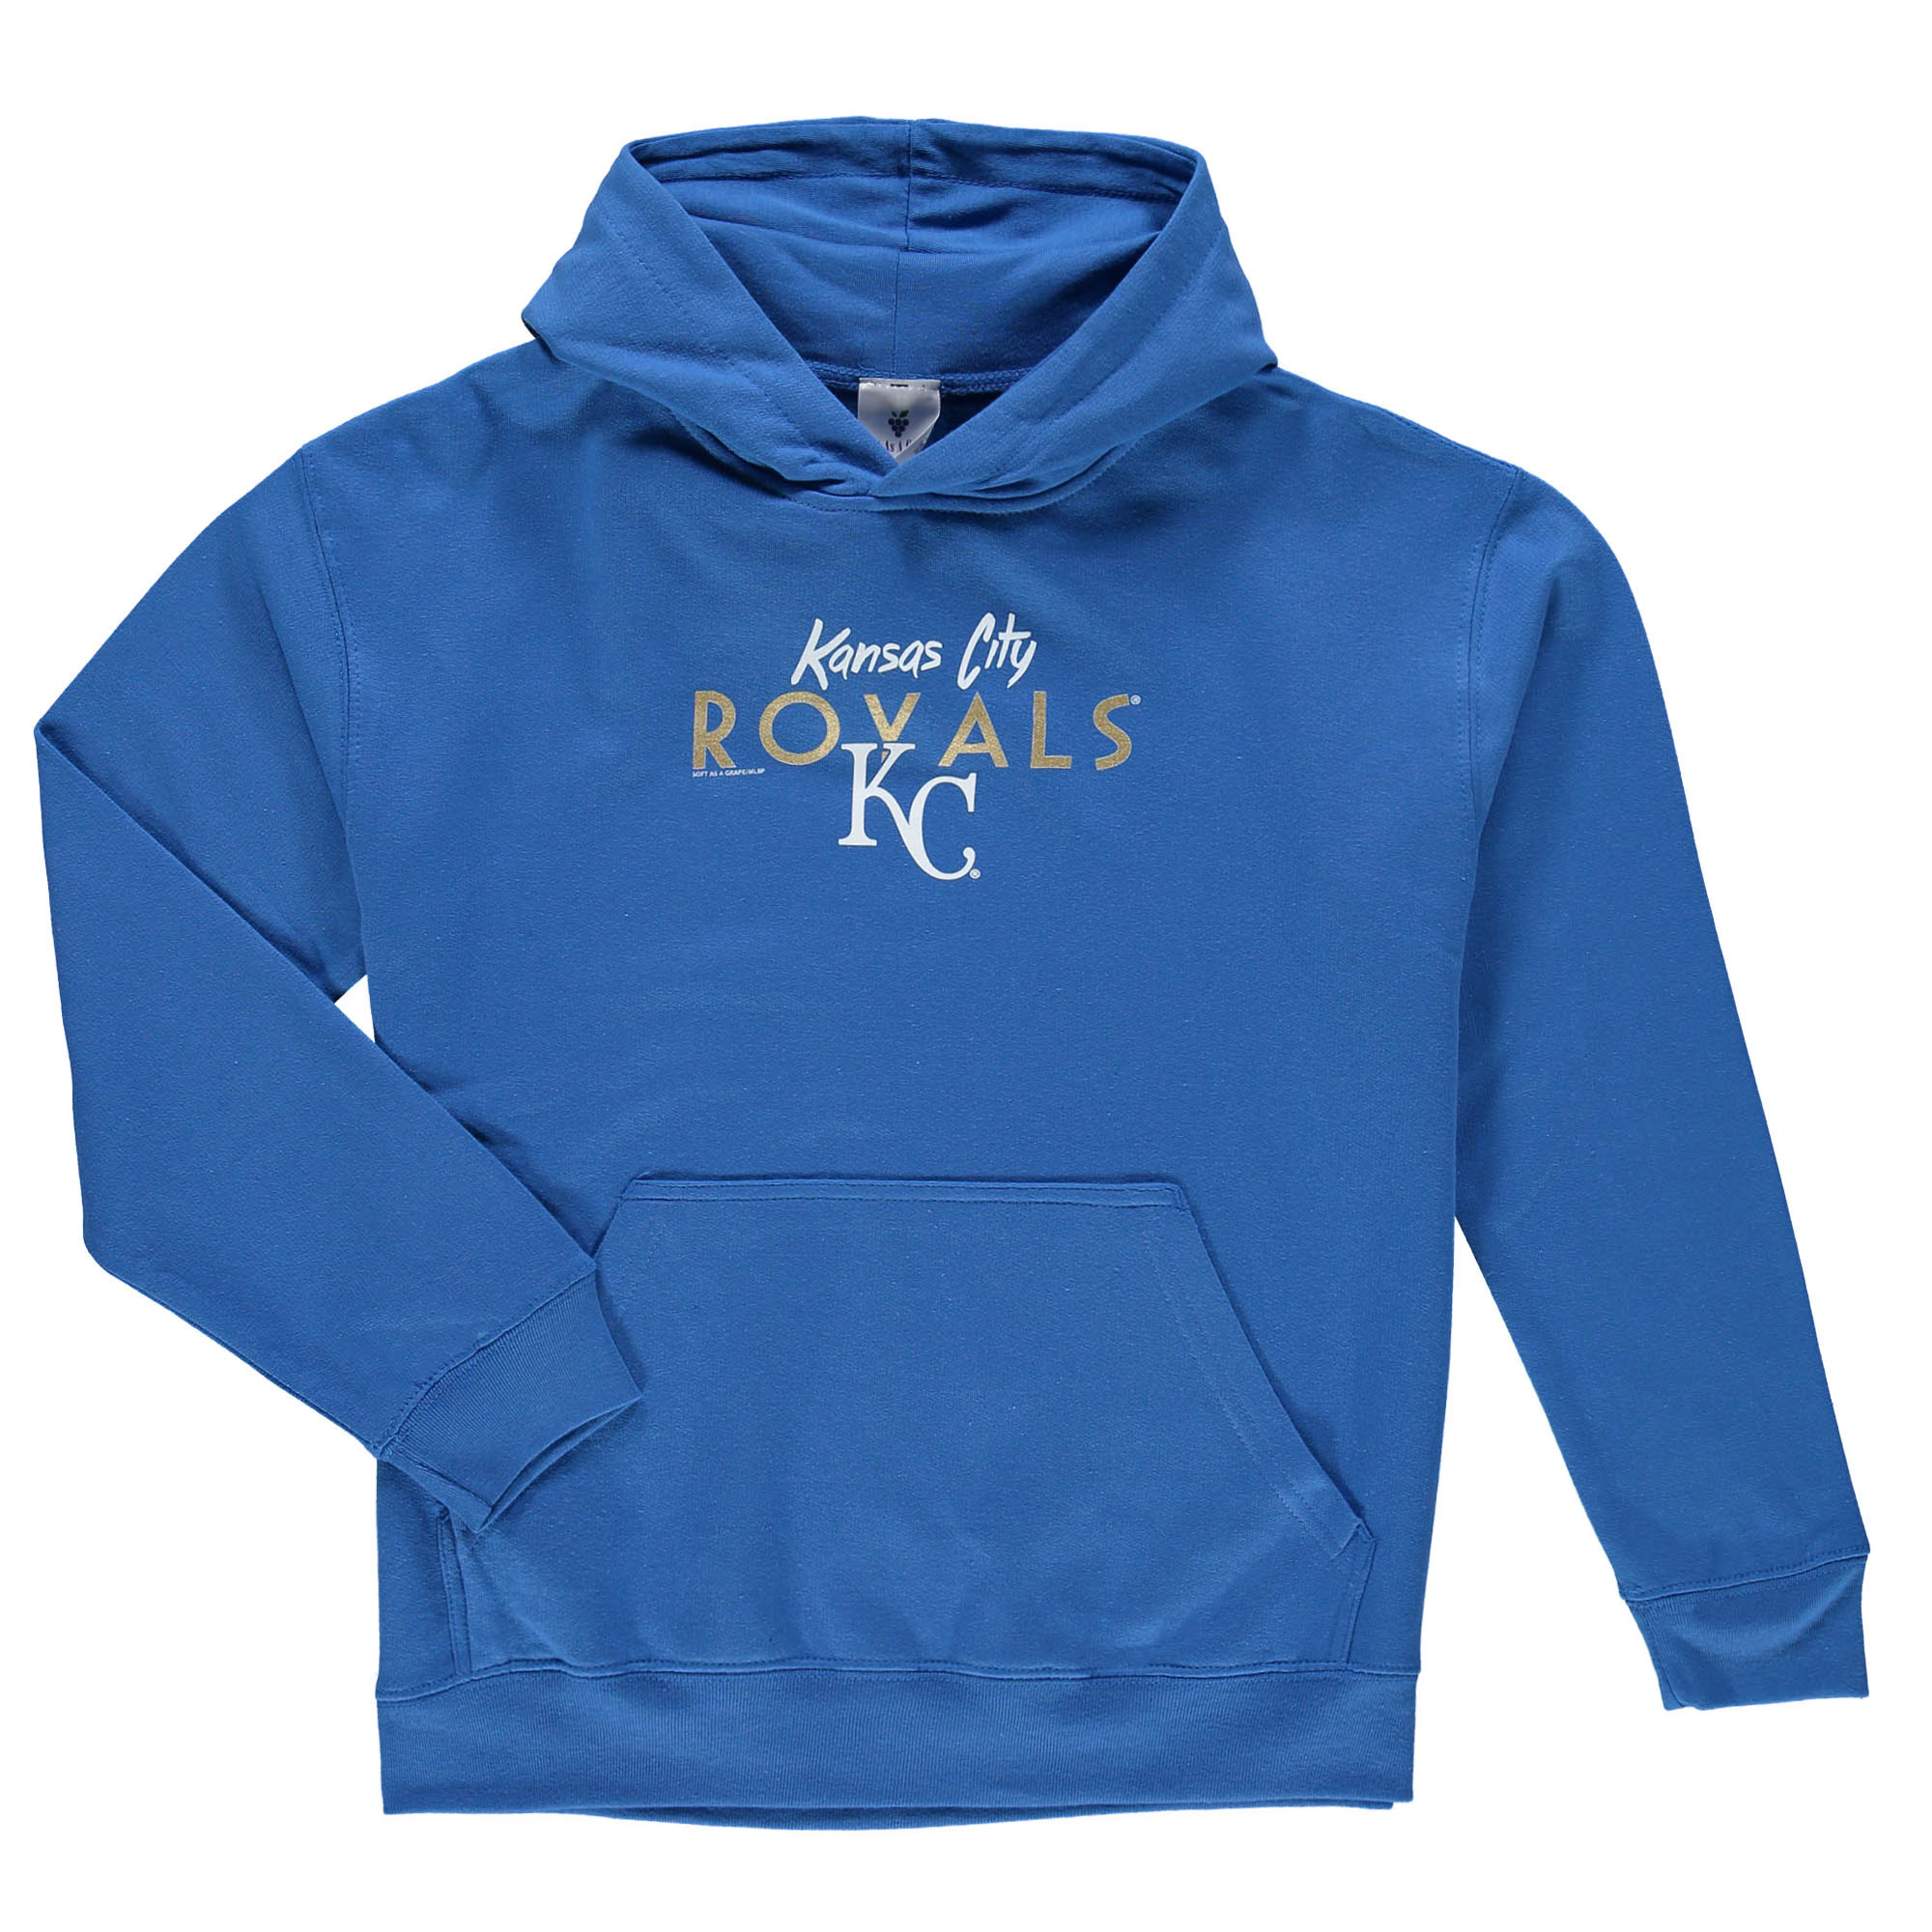 Kansas City Royals Soft as a Grape Youth Around the Horn Hoodie - Royal